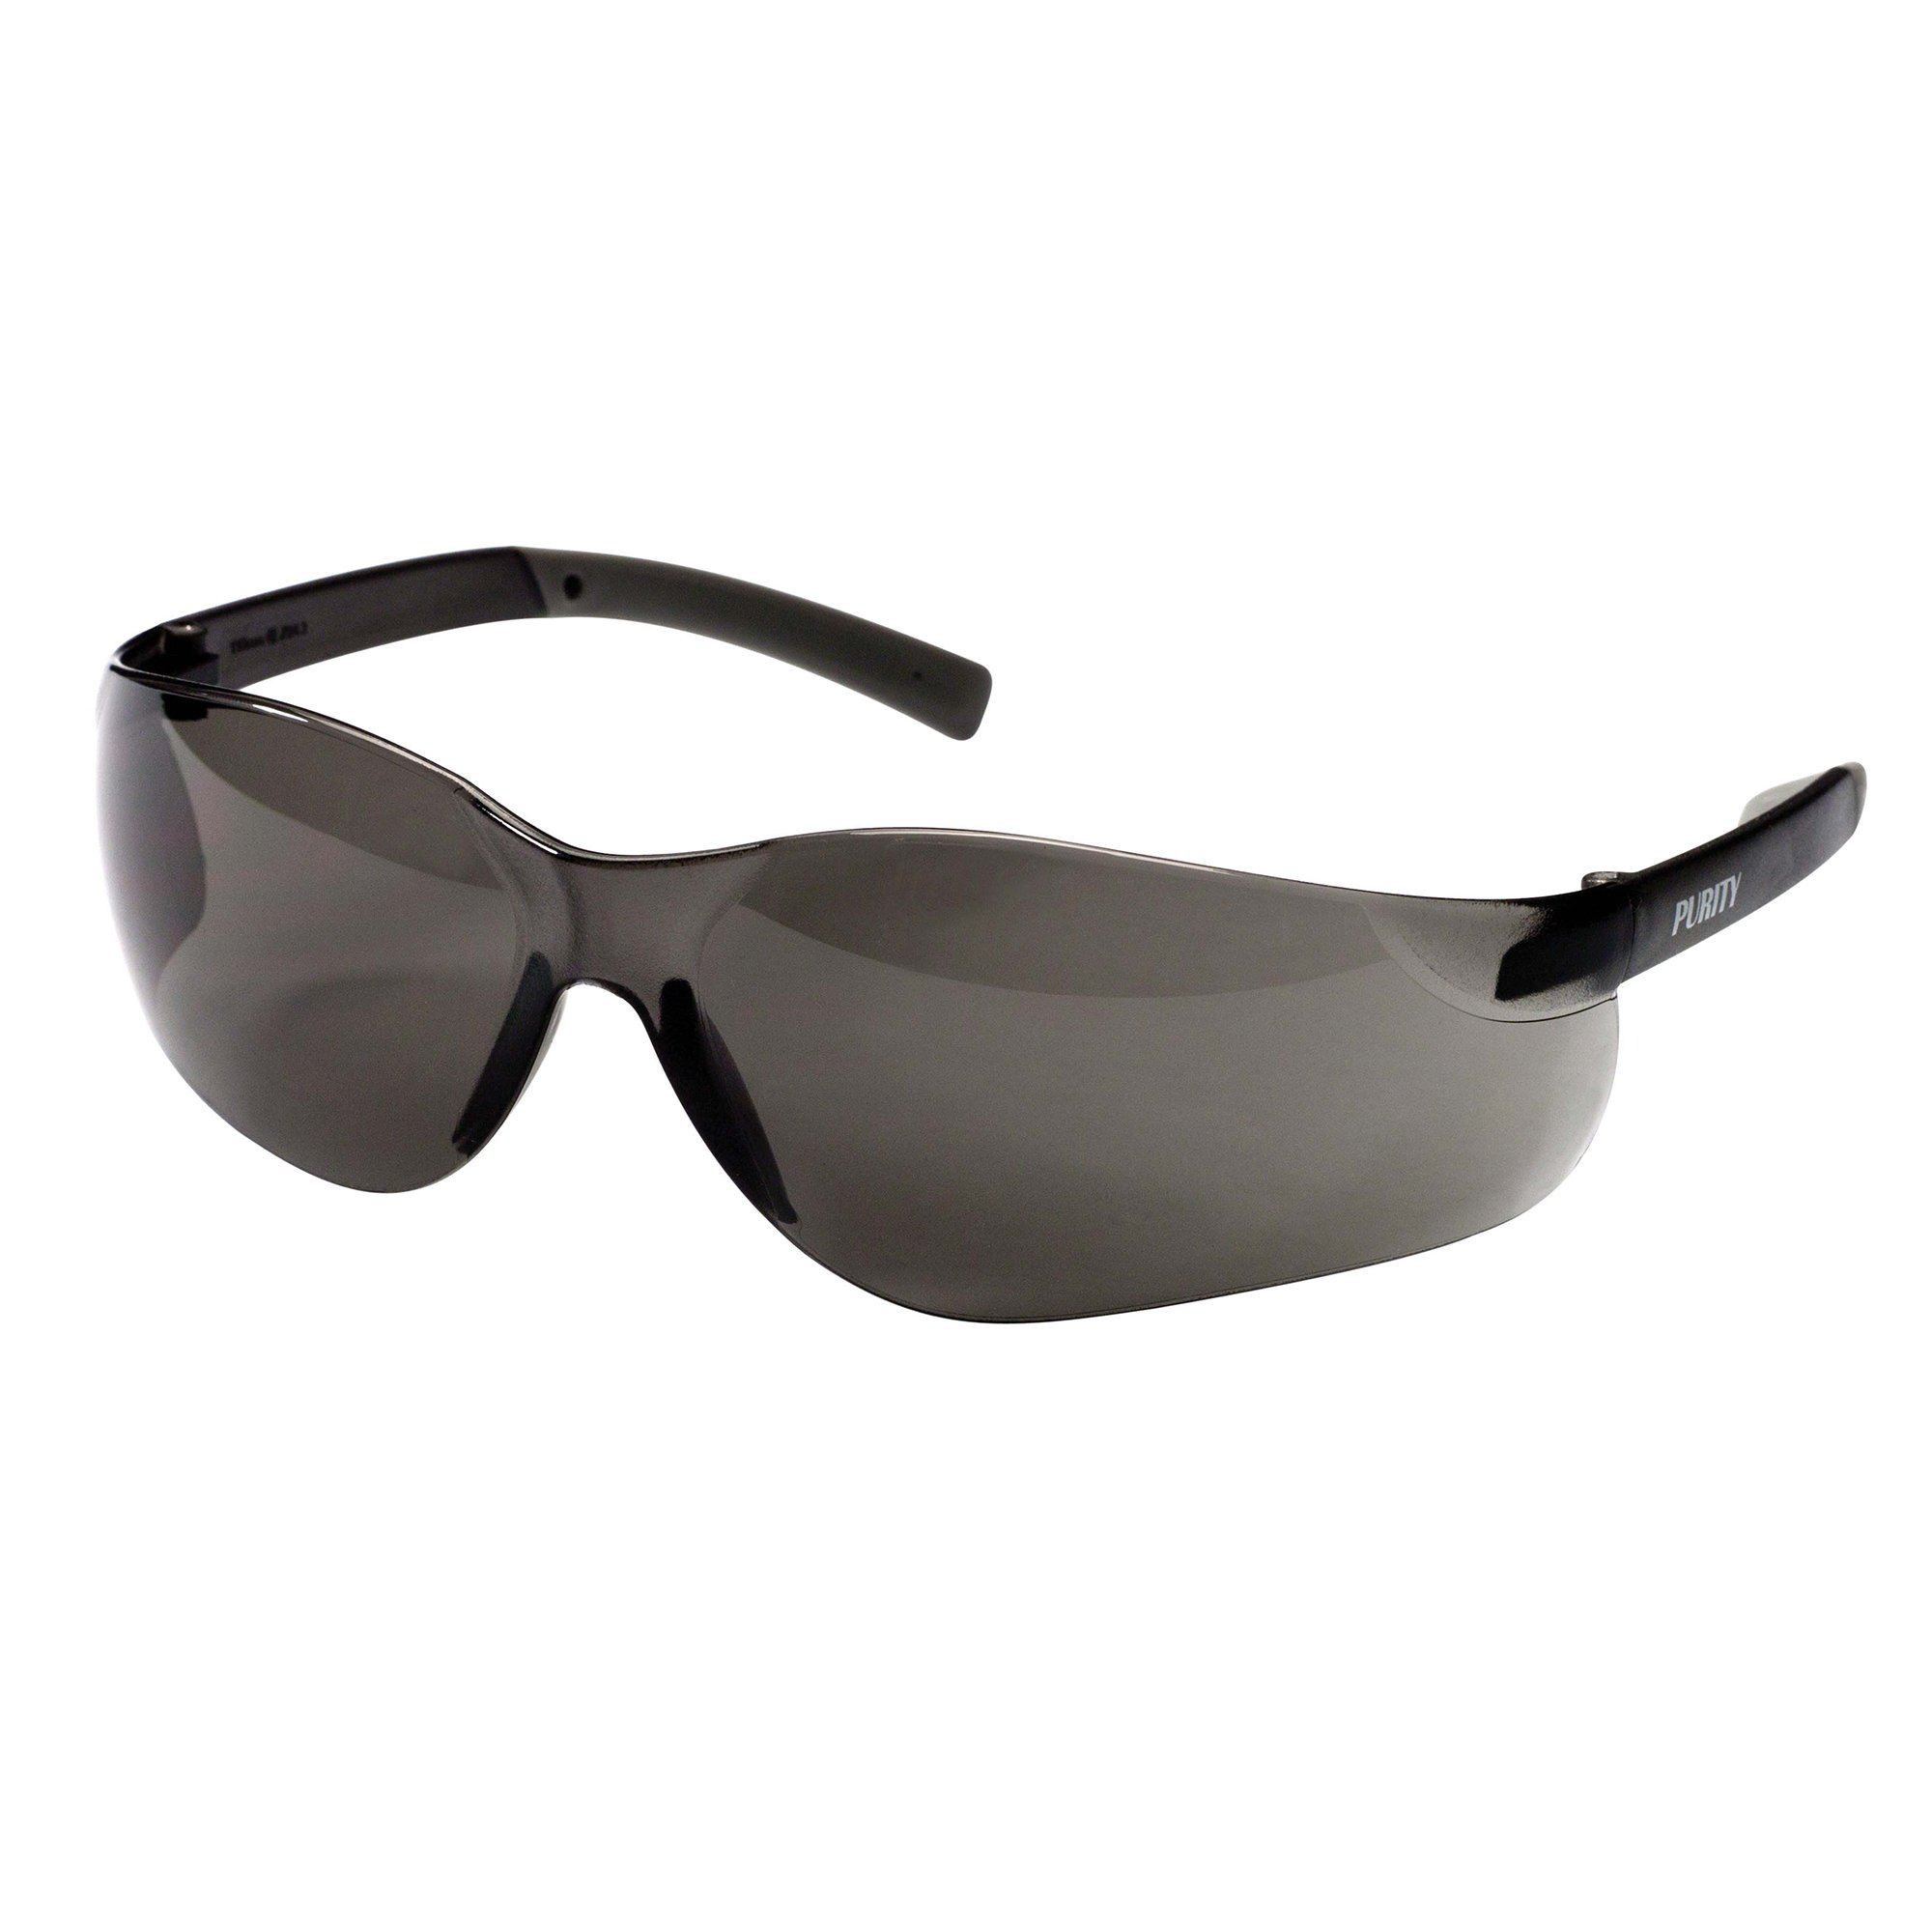 Jackson Safety V20 Purity Safety Glasses (25652), UV Protection, Hardcoated Smoke Lenses with Black Temples, 12 Pairs/Case